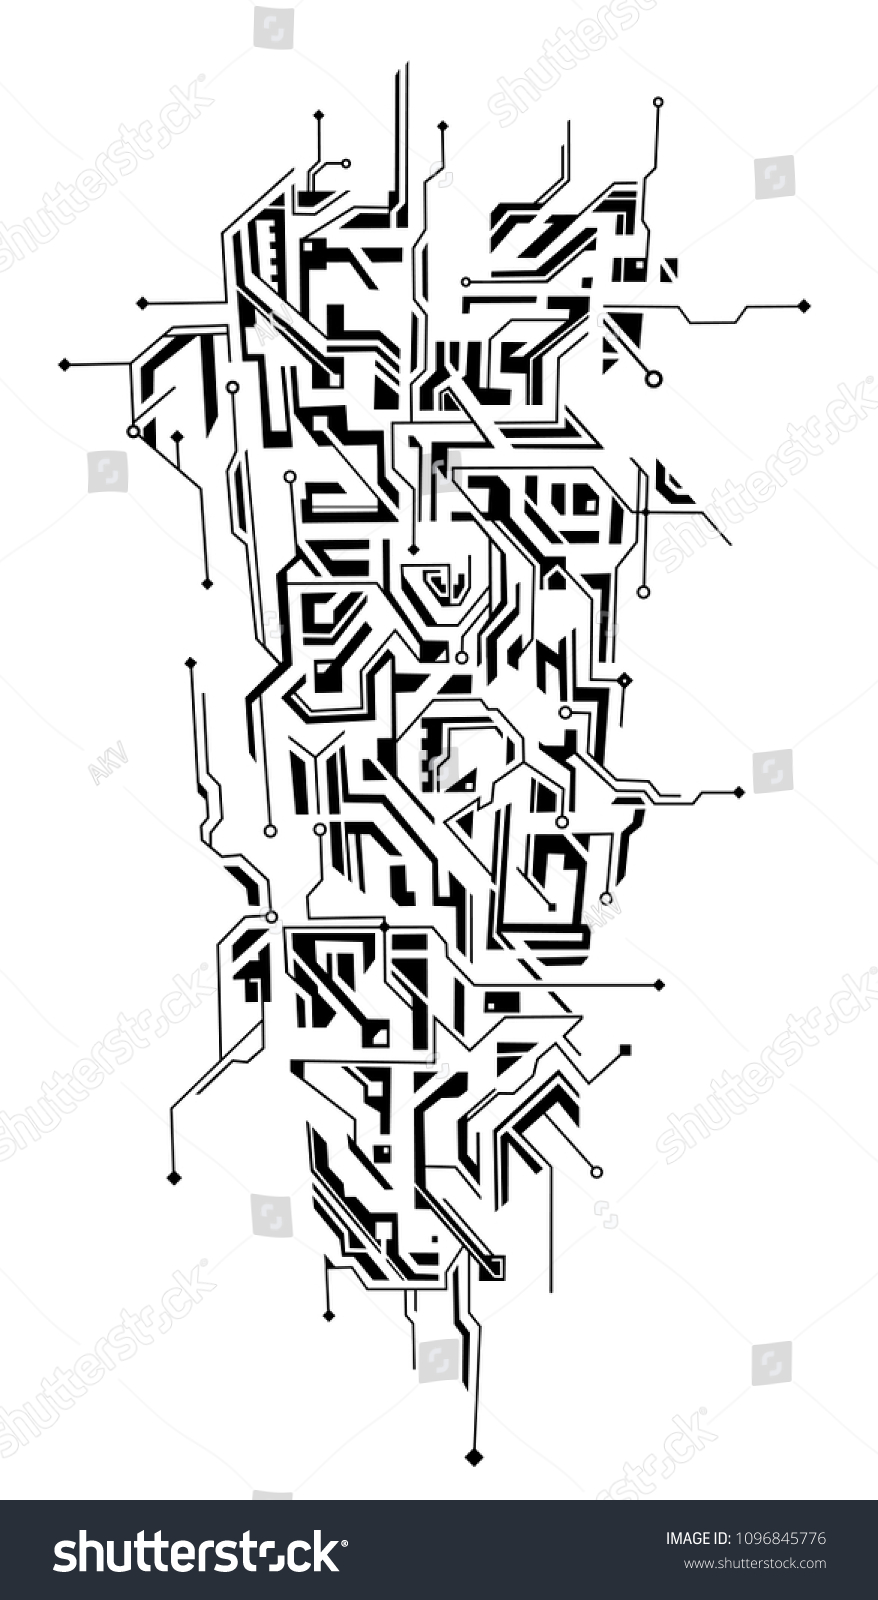 Circuit Board Abstract Background Tatoo Ideas T Circuits Stock Image 20108511 Tattoo Shaped As Ornament Good For Arm Decoration